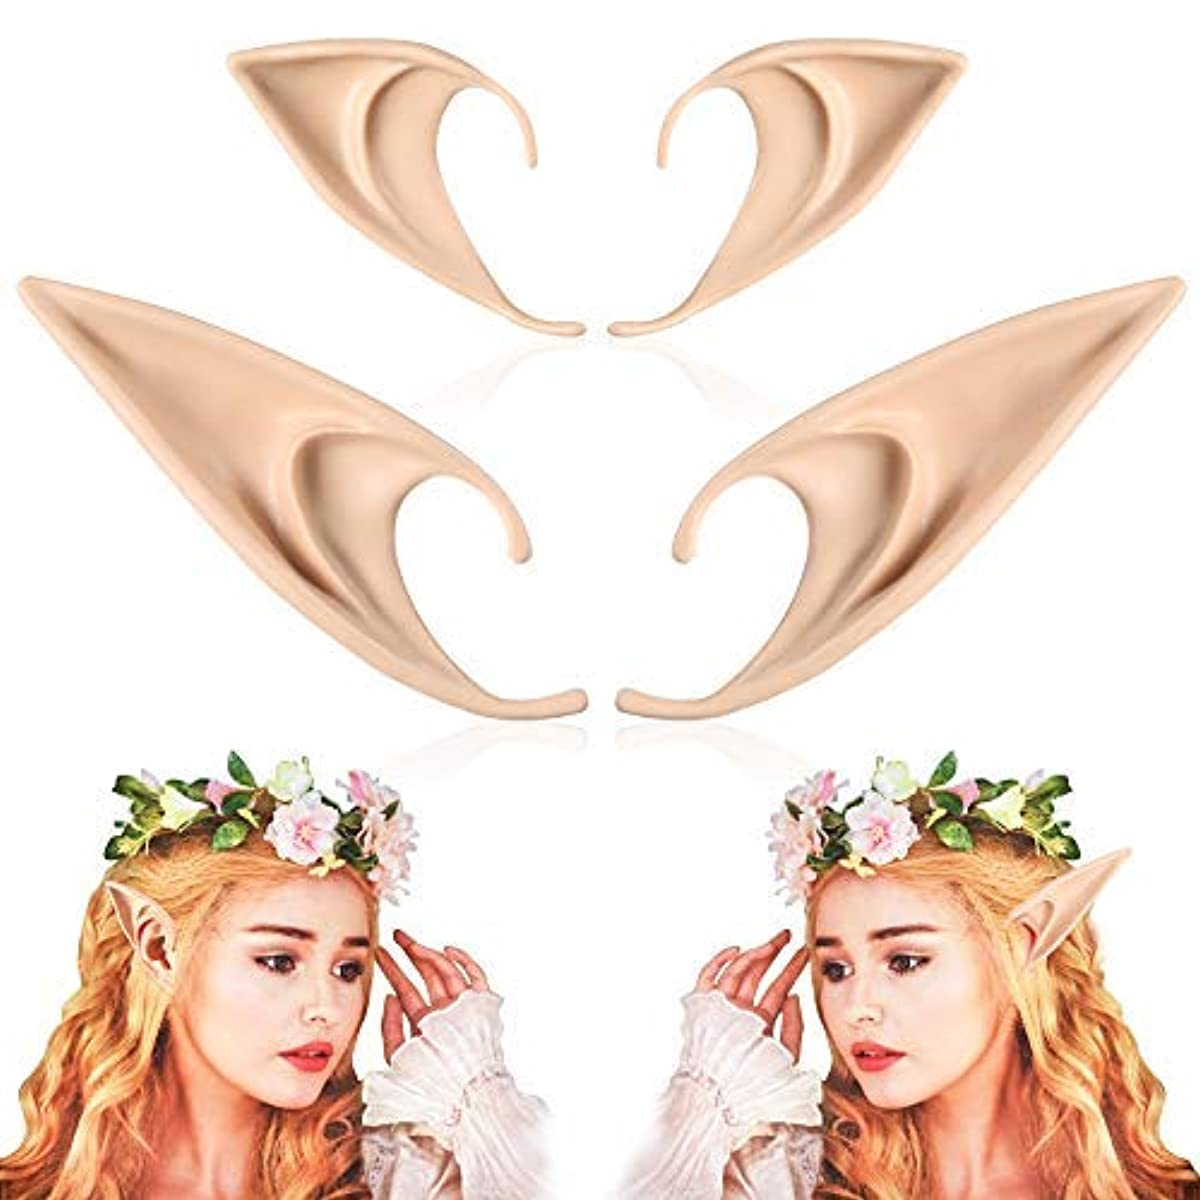 [할로윈데이 코스프레 코스튬 소품 엘프 요정귀 뱀파이어] FRESHME Pairs Medium and Long Style Cosplay Pixie Elf Soft Pointed Tips Anime Party Dress Up Costume Masquerade Accessories Halloween Elven Vampire Fairy Ears (2, Beige